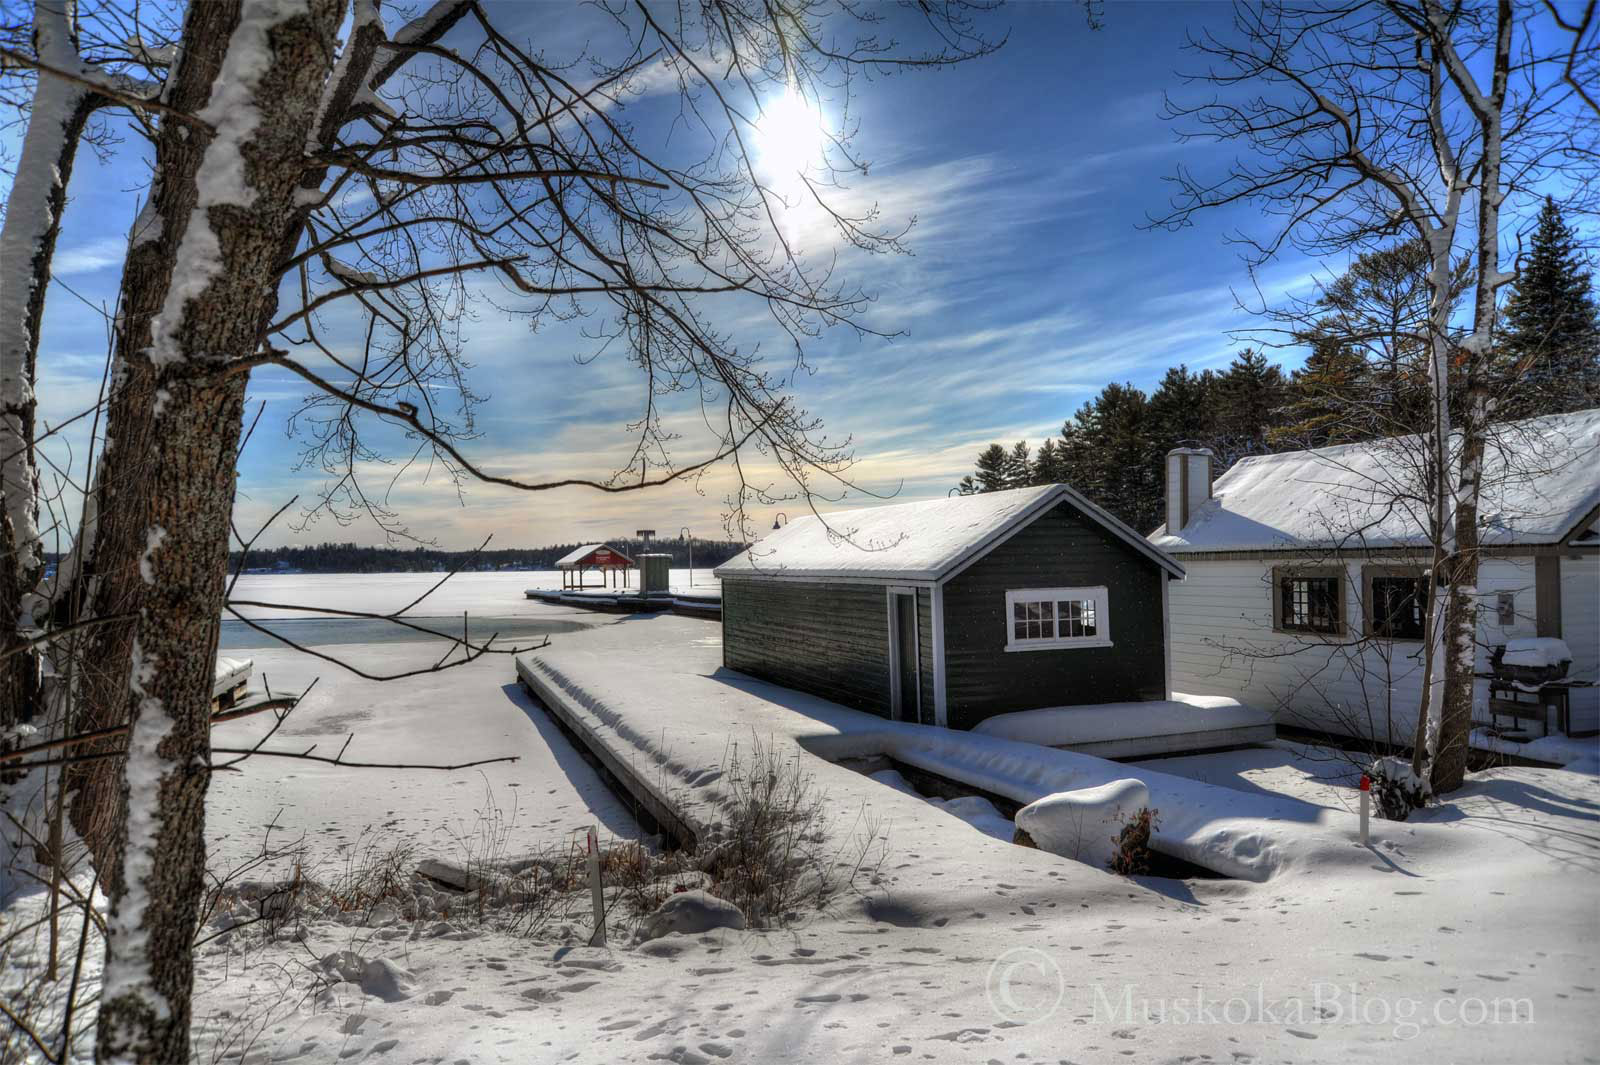 beaumaris, lake muskoka, muskoka lakes